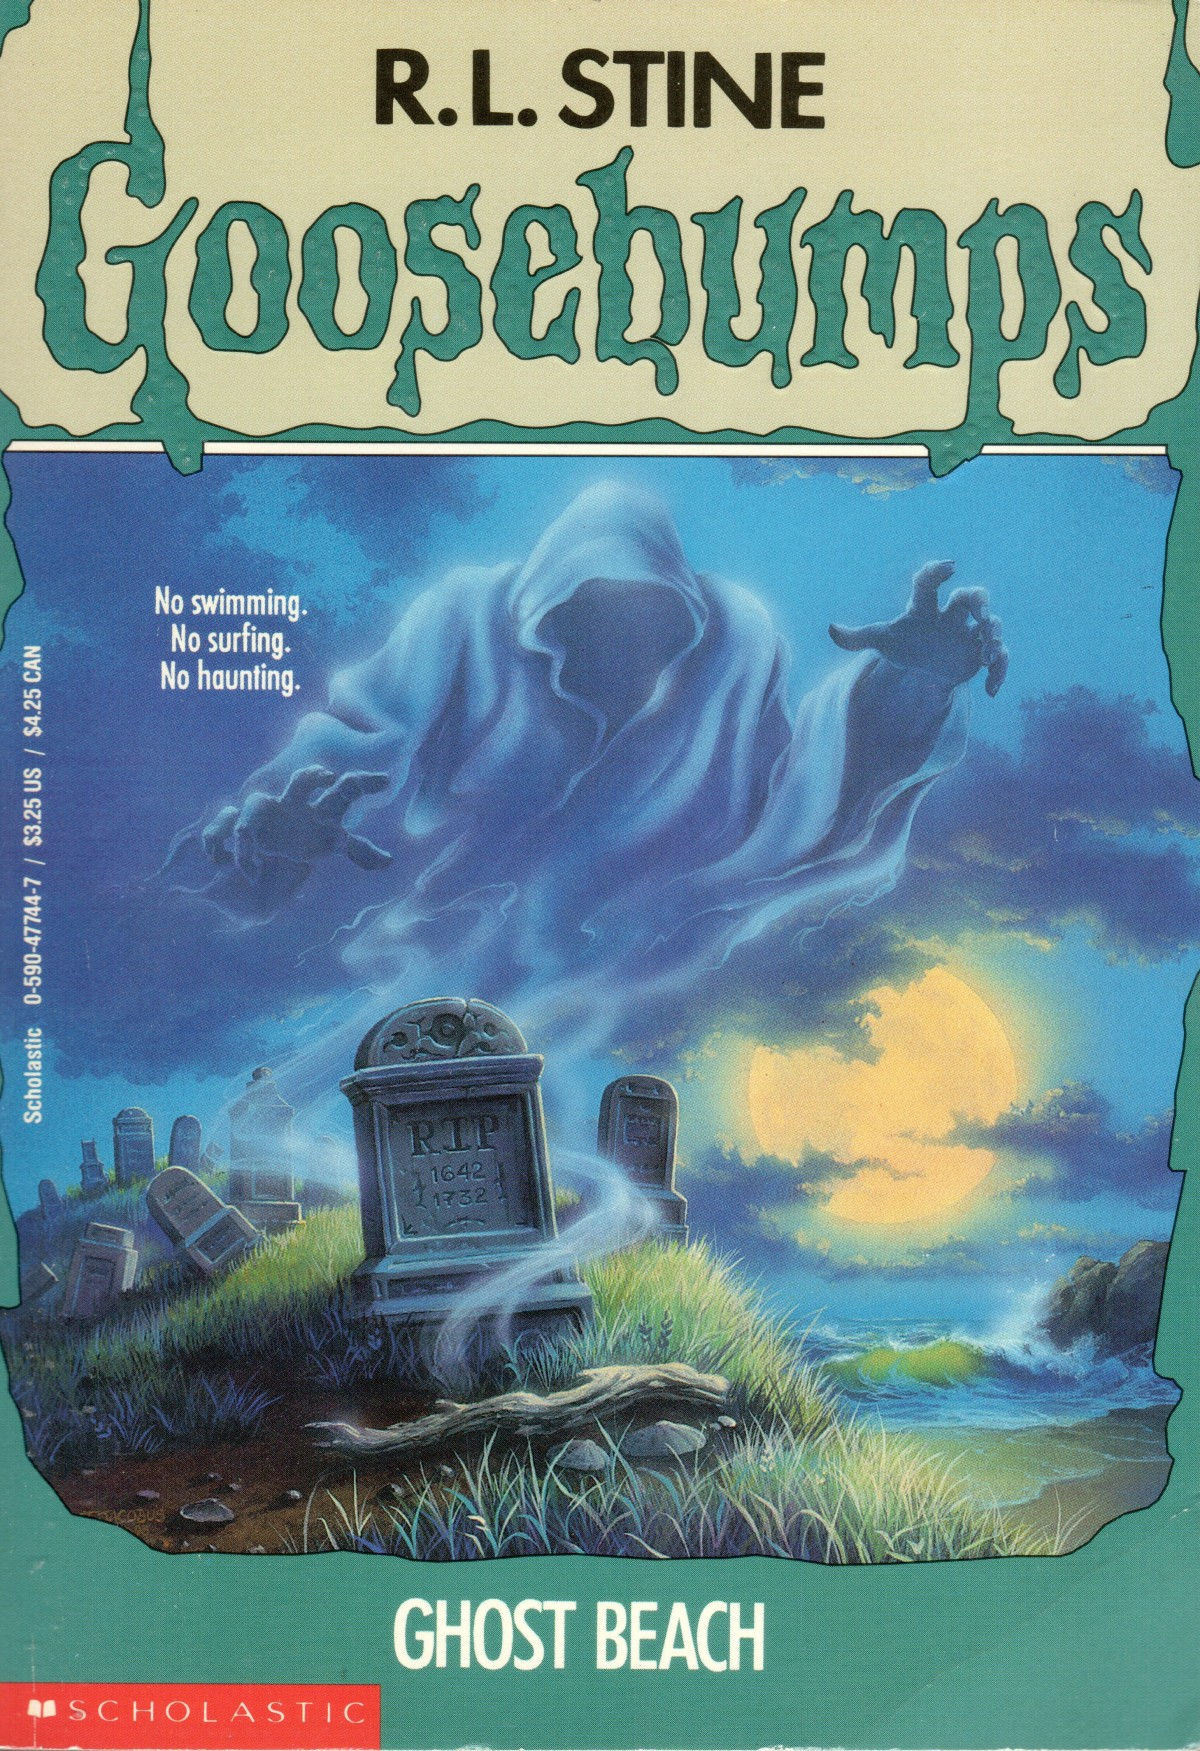 A spooky ghost hovers over a graveyard next to a each.